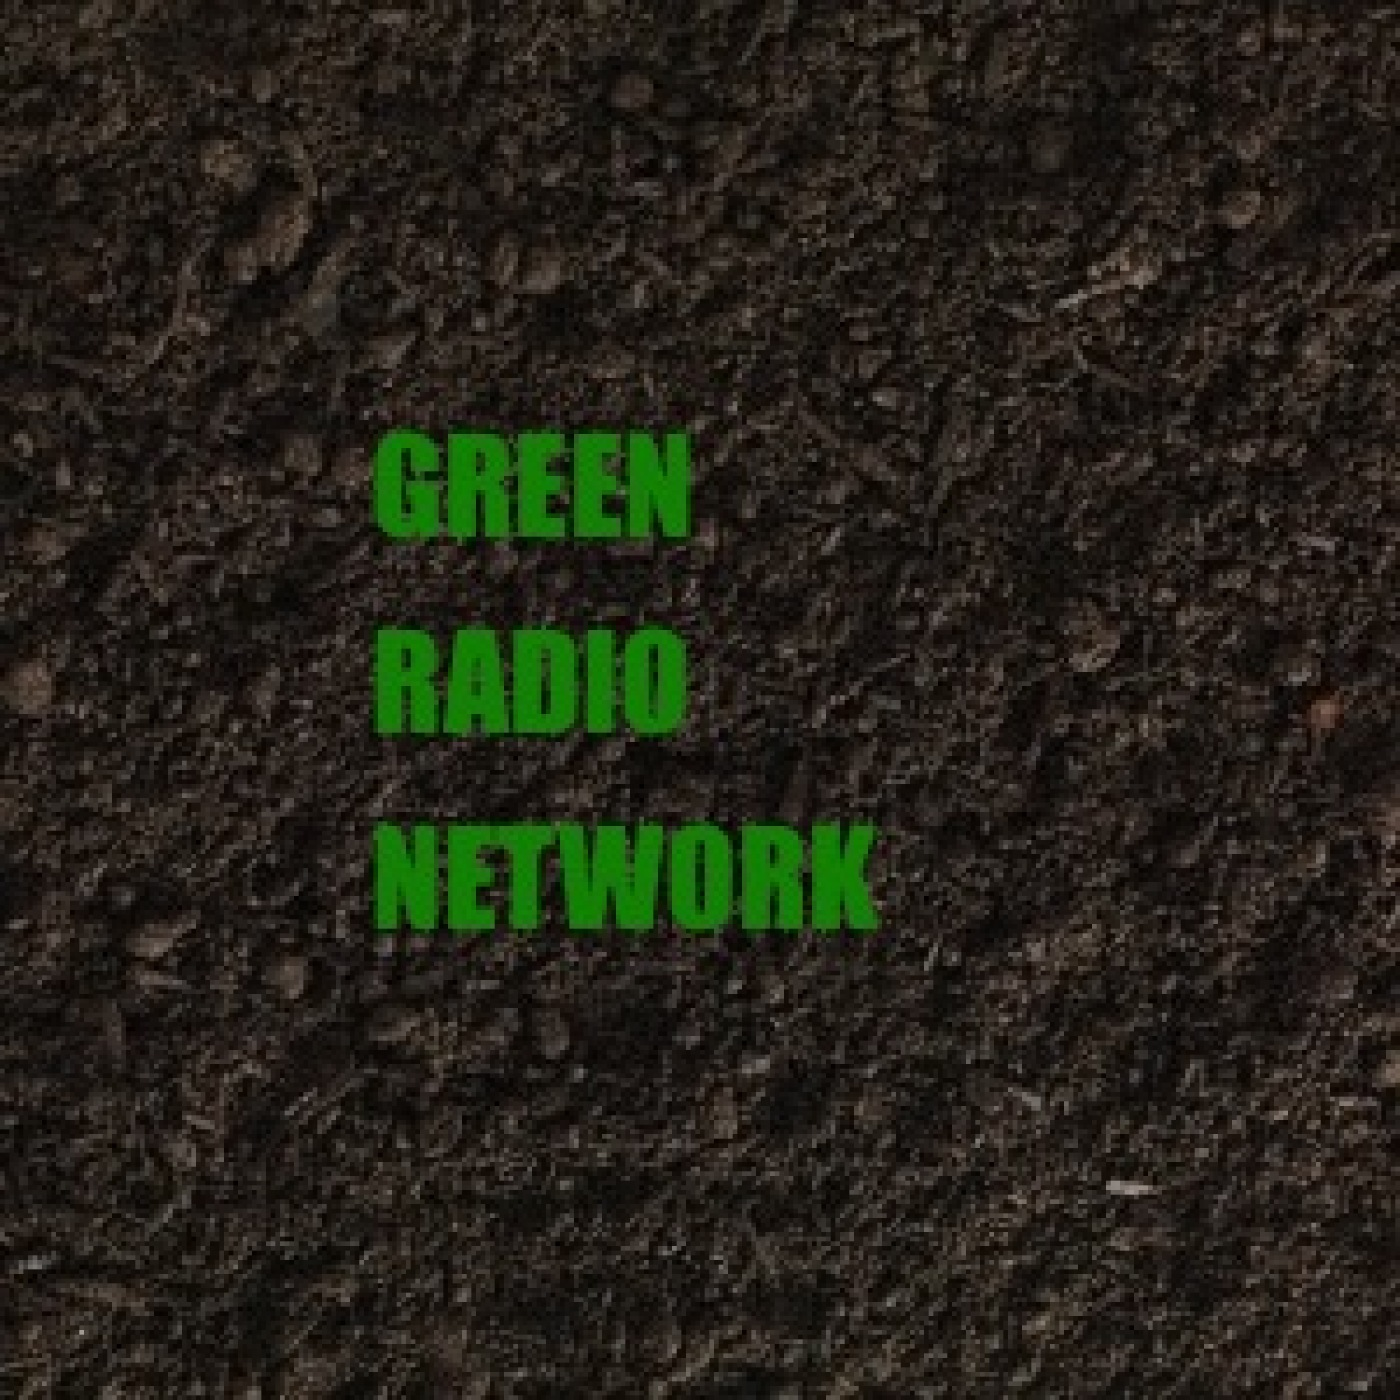 Podcasts – Green Radio Network